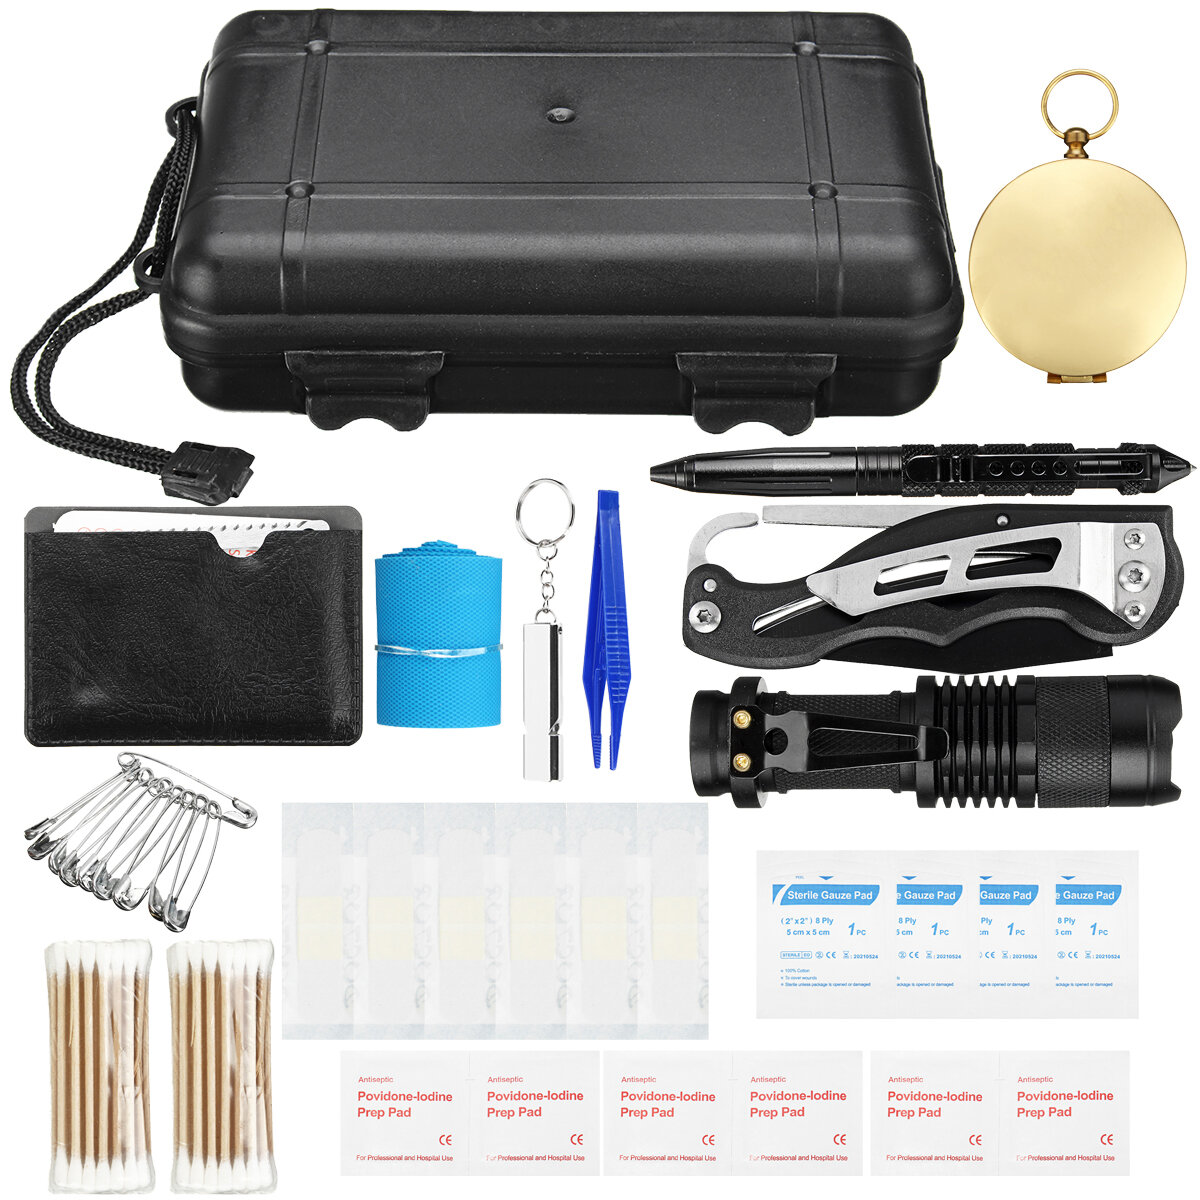 Field Survival Tools Kit Outdoor Multi-aid Equipment SOS Expedition Supplies